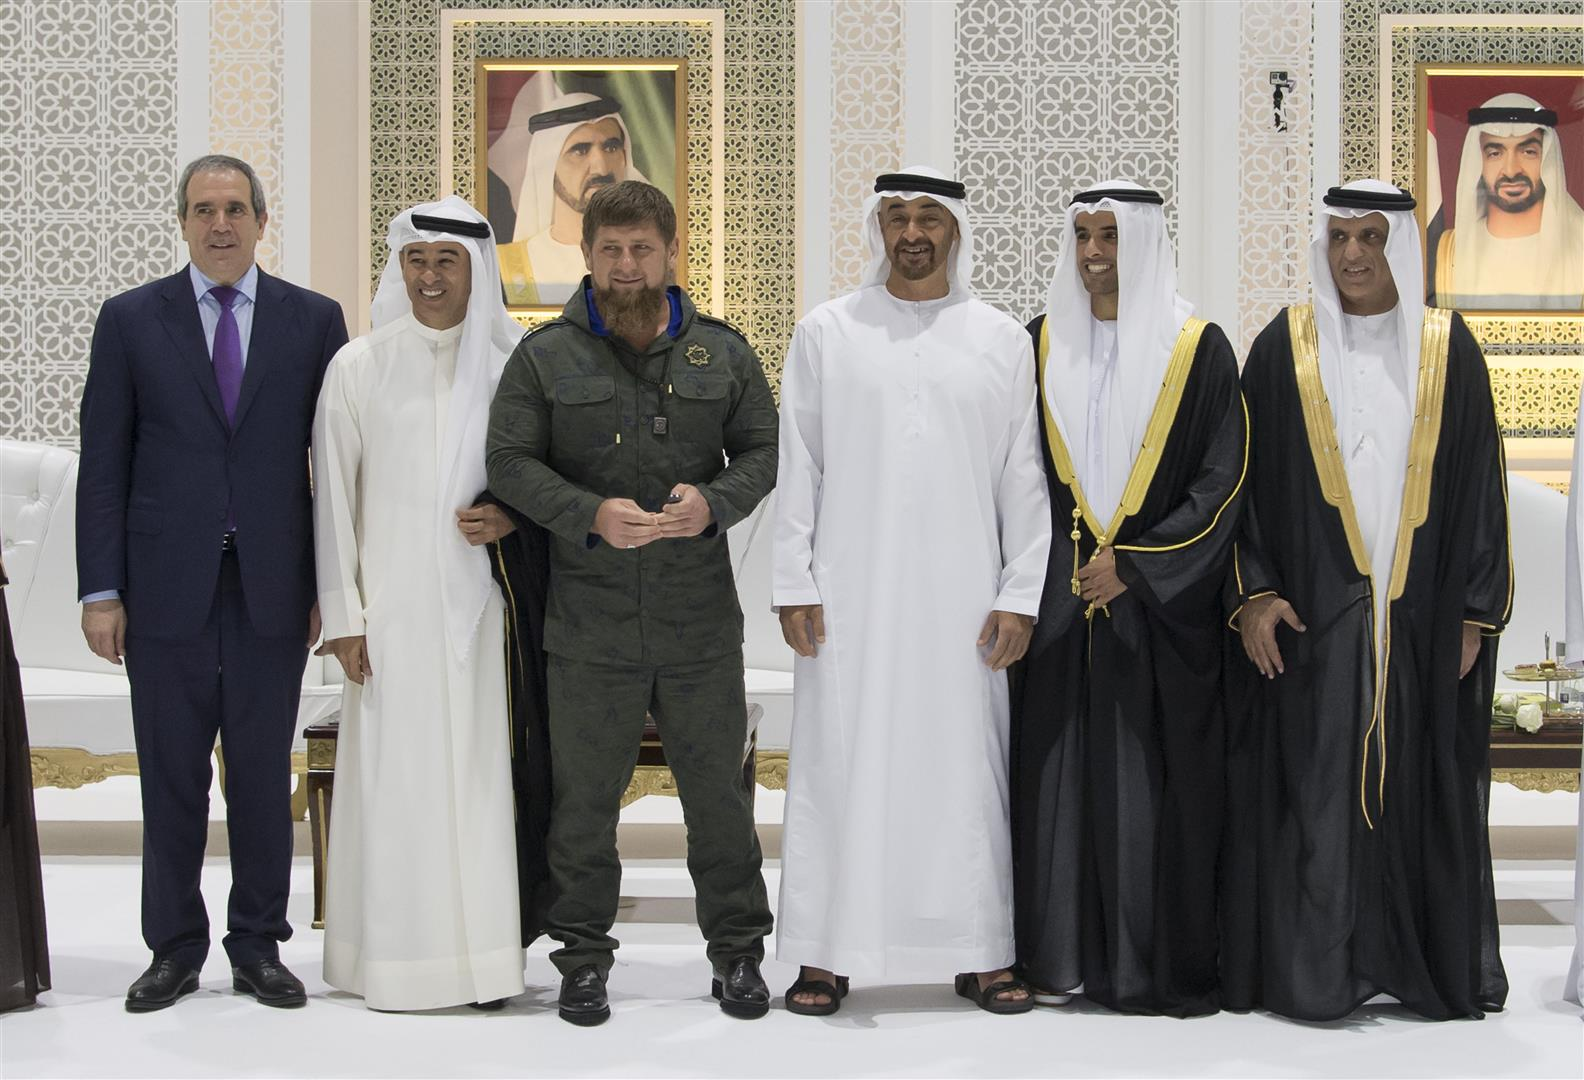 Vp  Mohamed Bin Zayed And Rulers Attend Al Abbar And Al